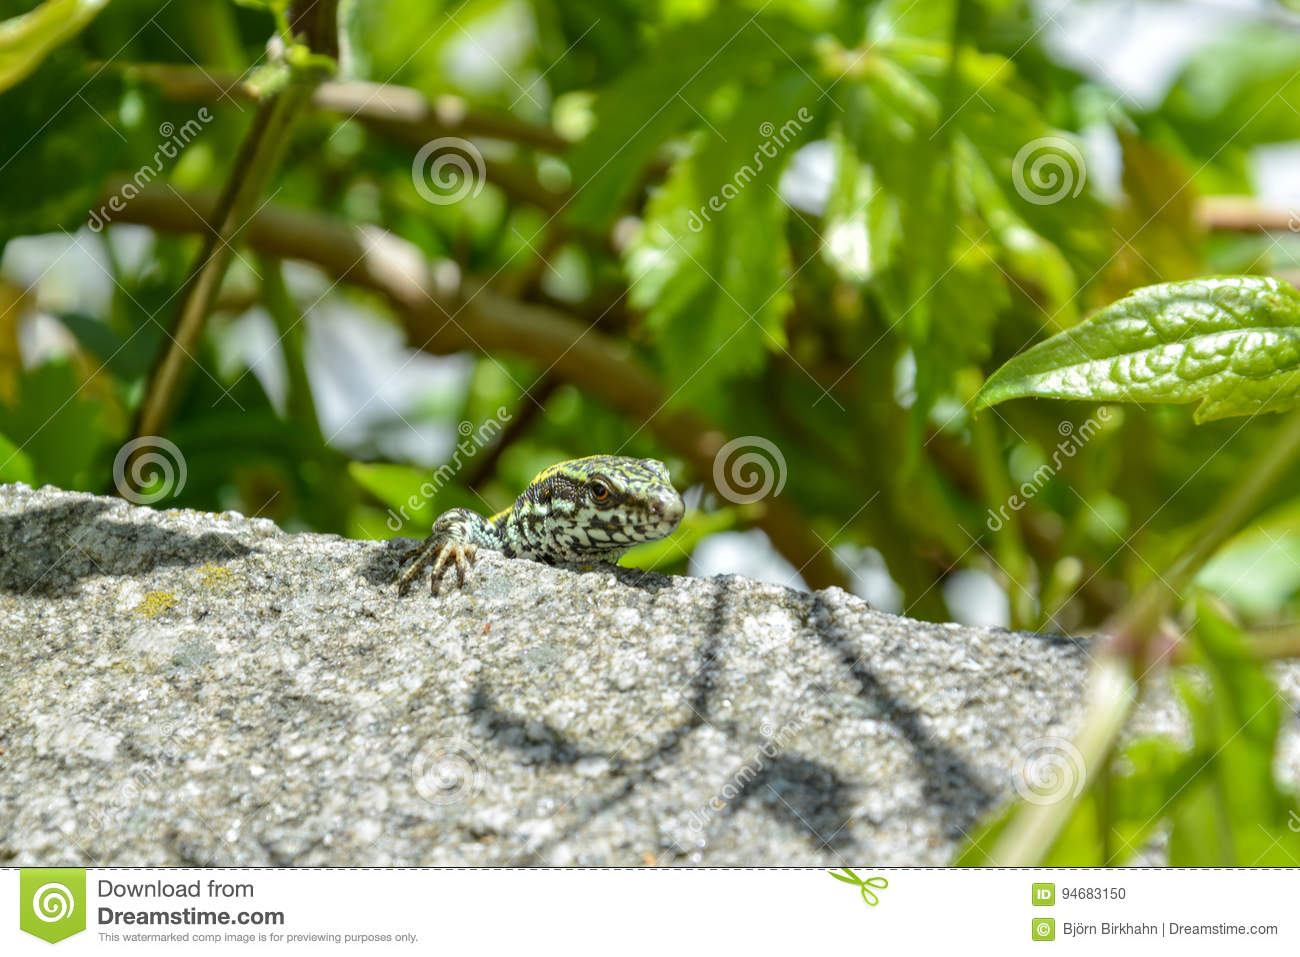 A little curious lizard sits on a rock